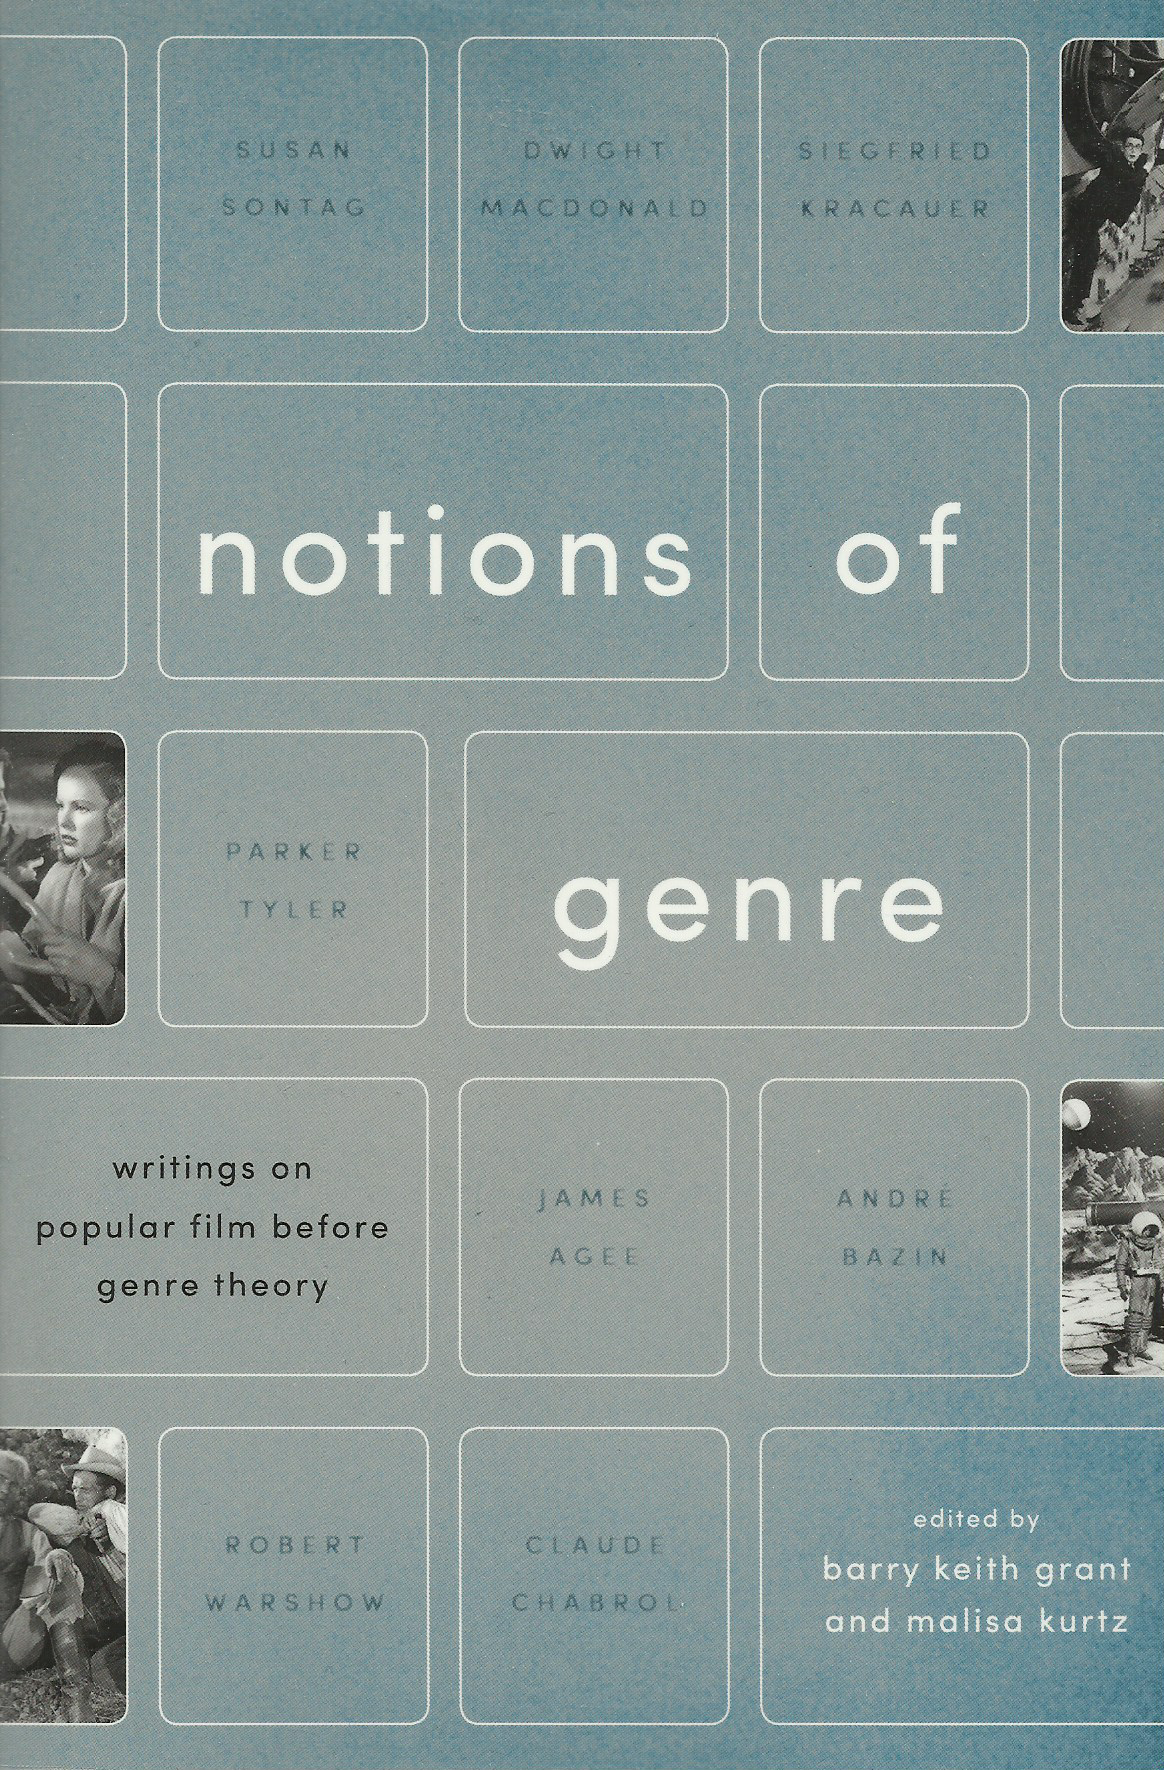 Notions of genre: Writings on Popular Film before Genre Theory